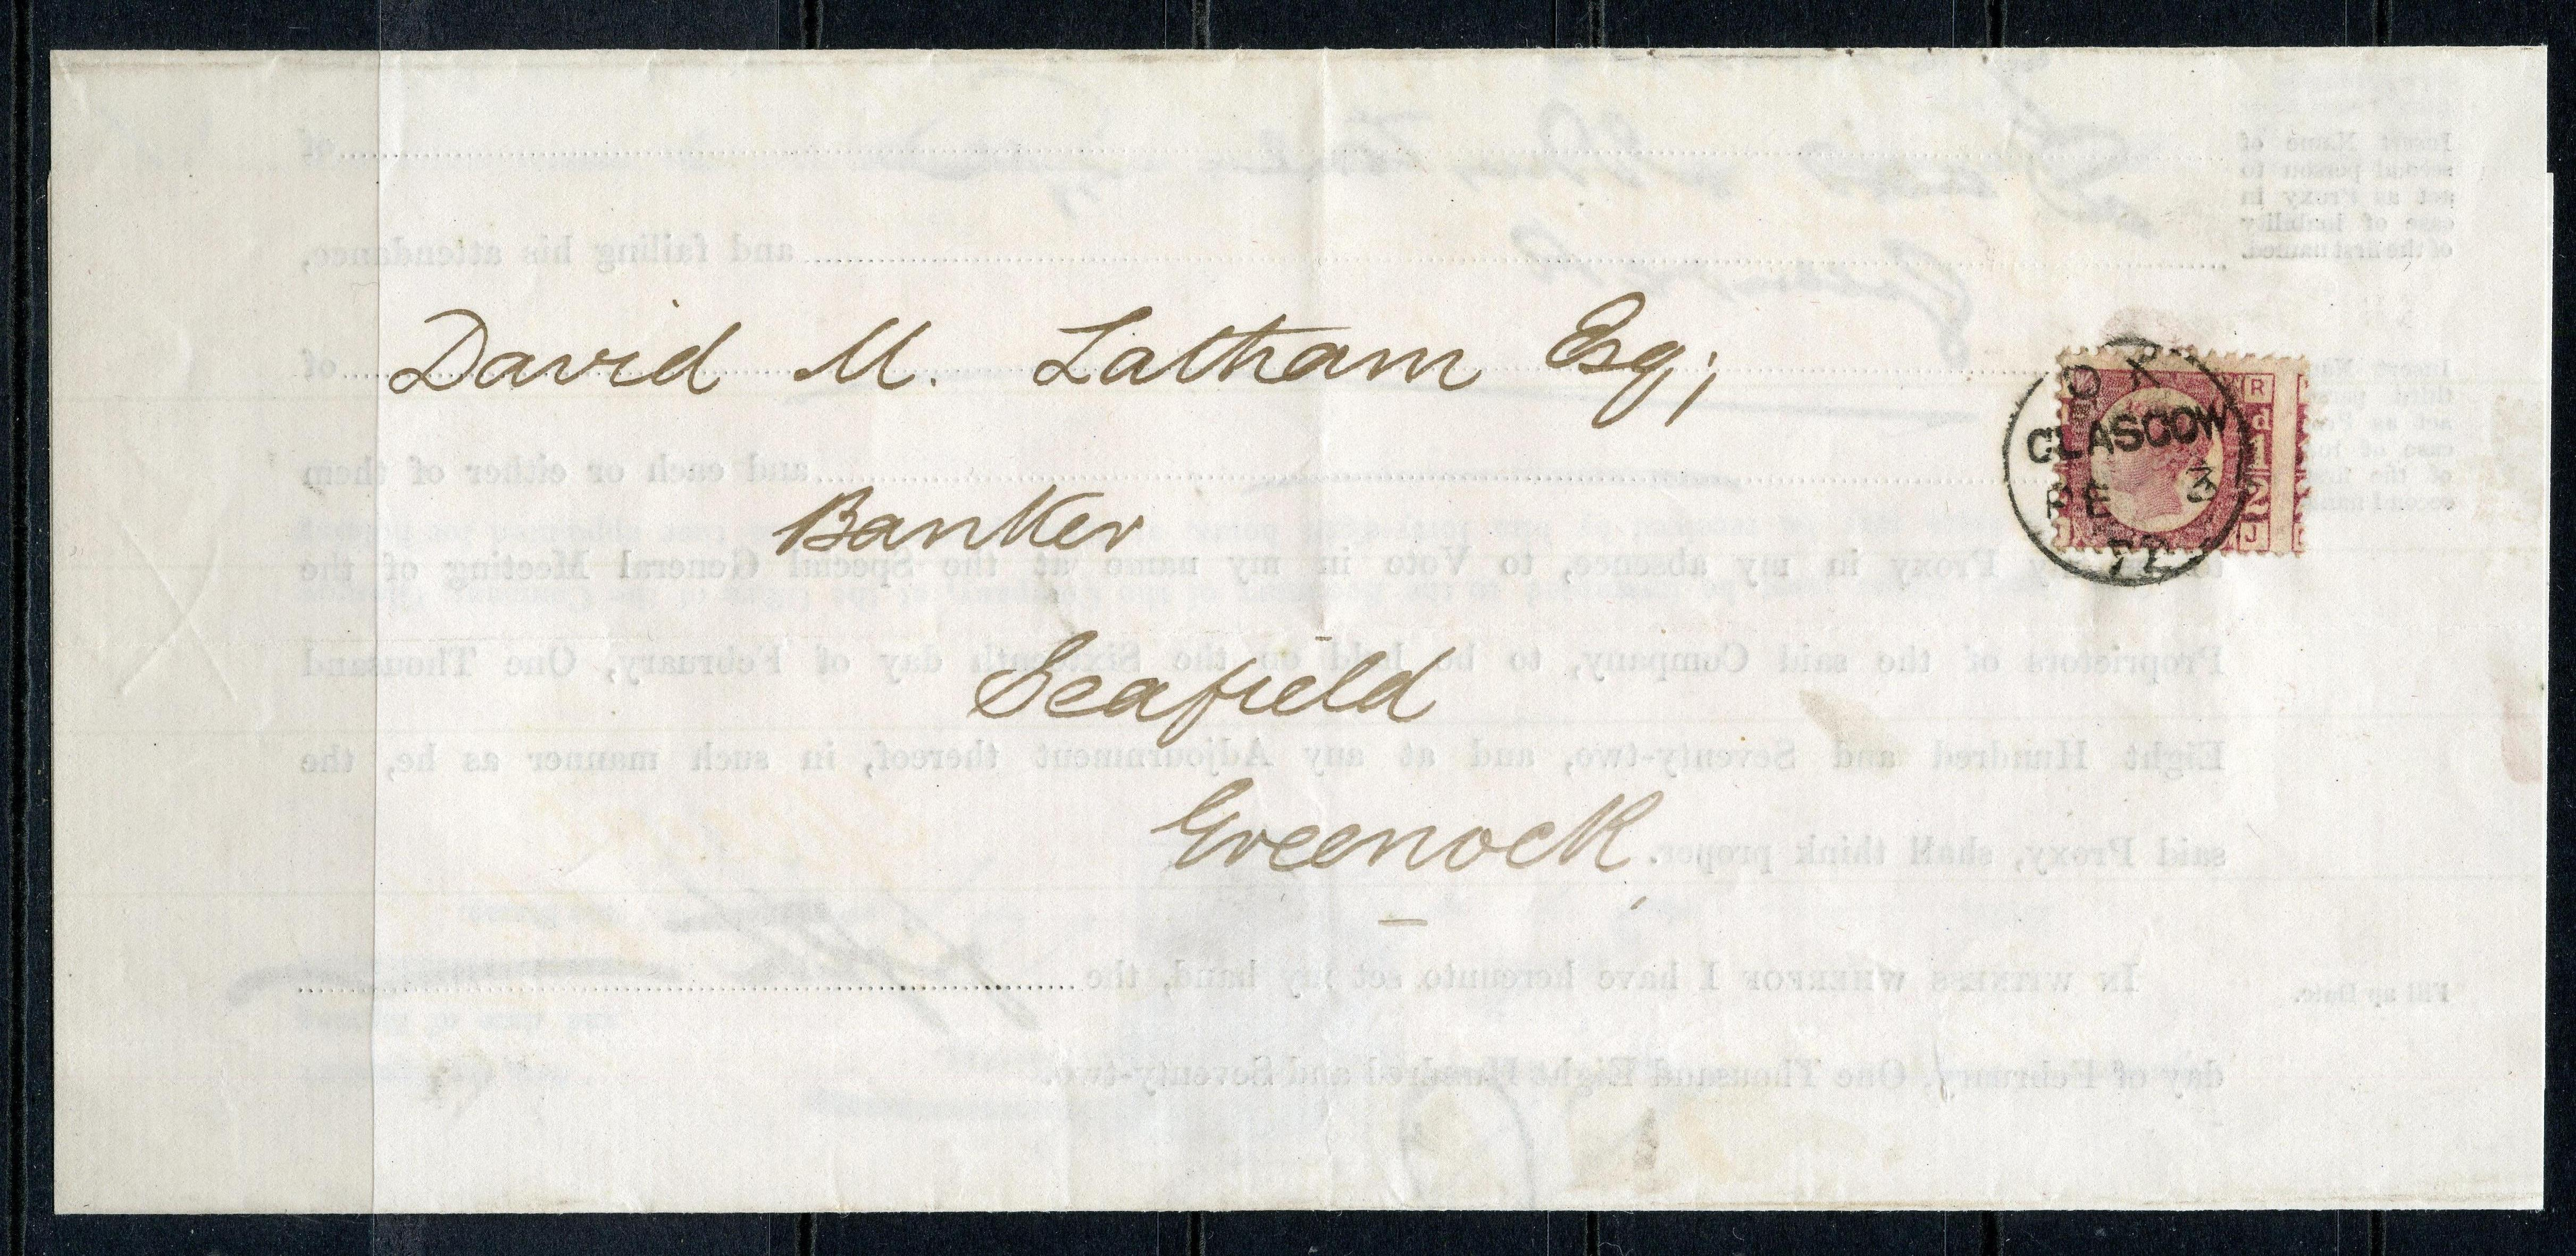 POSTAL HISTORY 1872 ½d rose red plate 3 neatly cancelled by Glasgow cds used on entire to Glasgow.